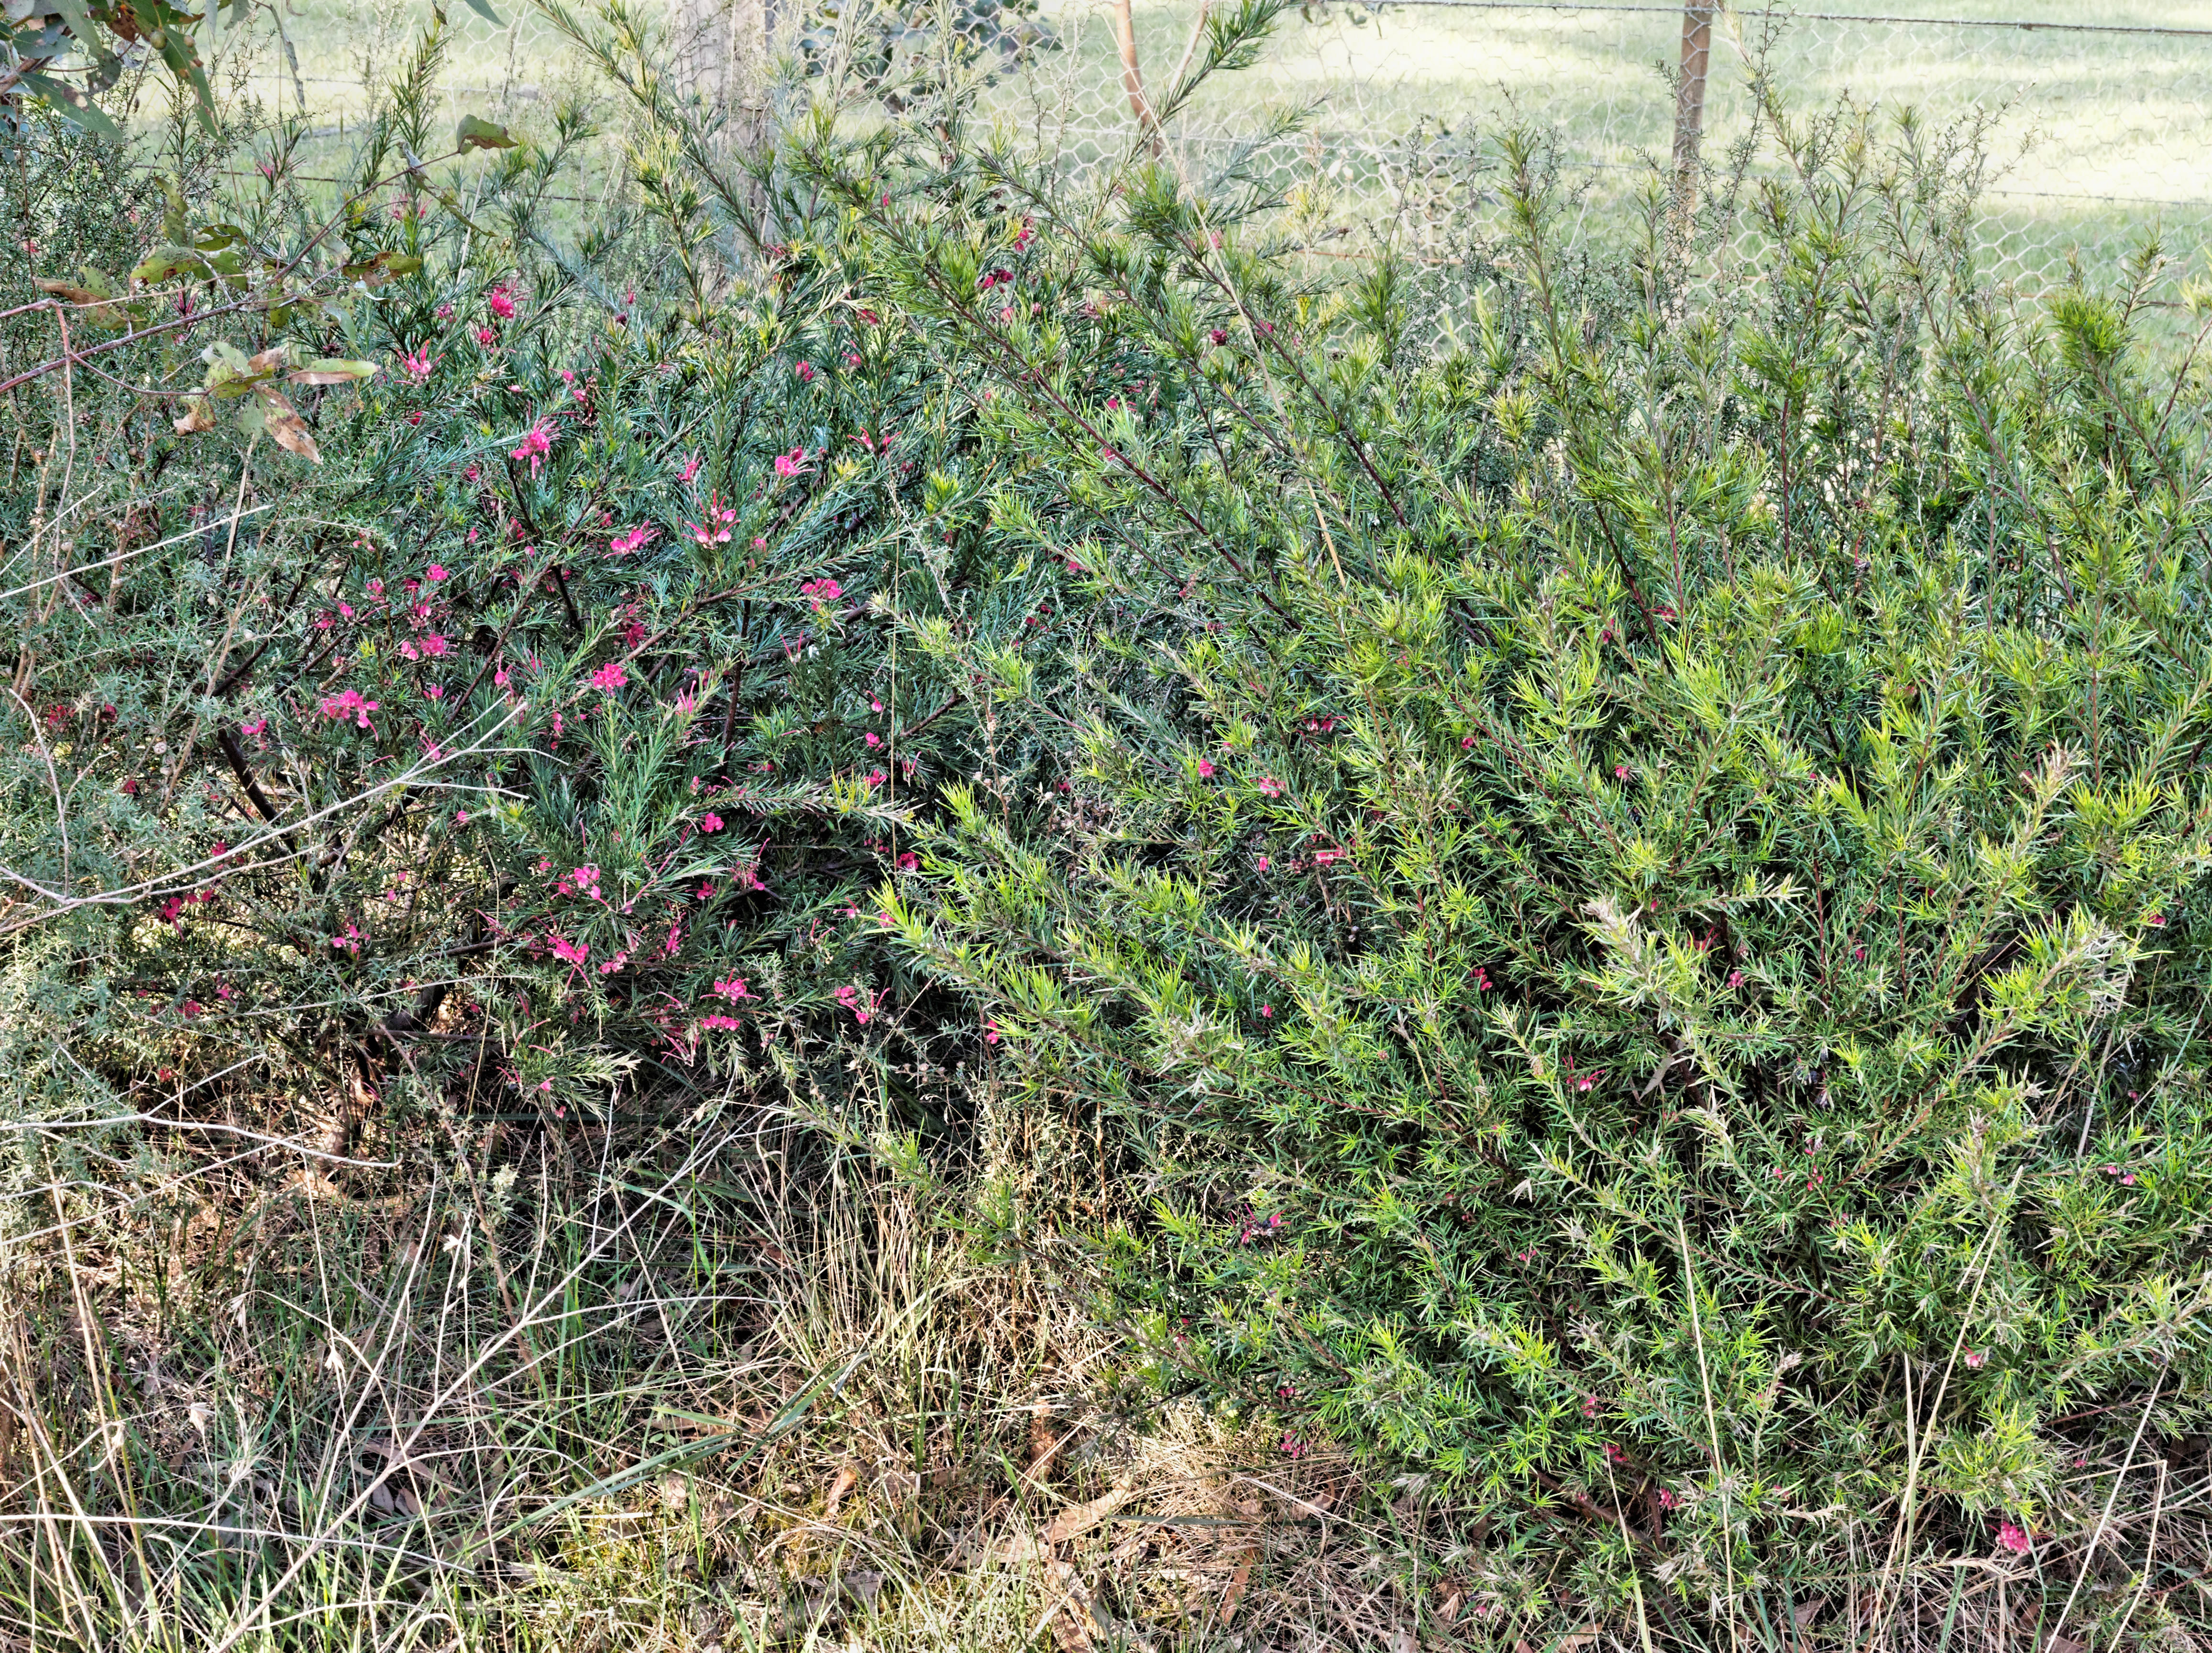 This should be Grevillea-rosmarinifolia.jpeg.  Is it missing?